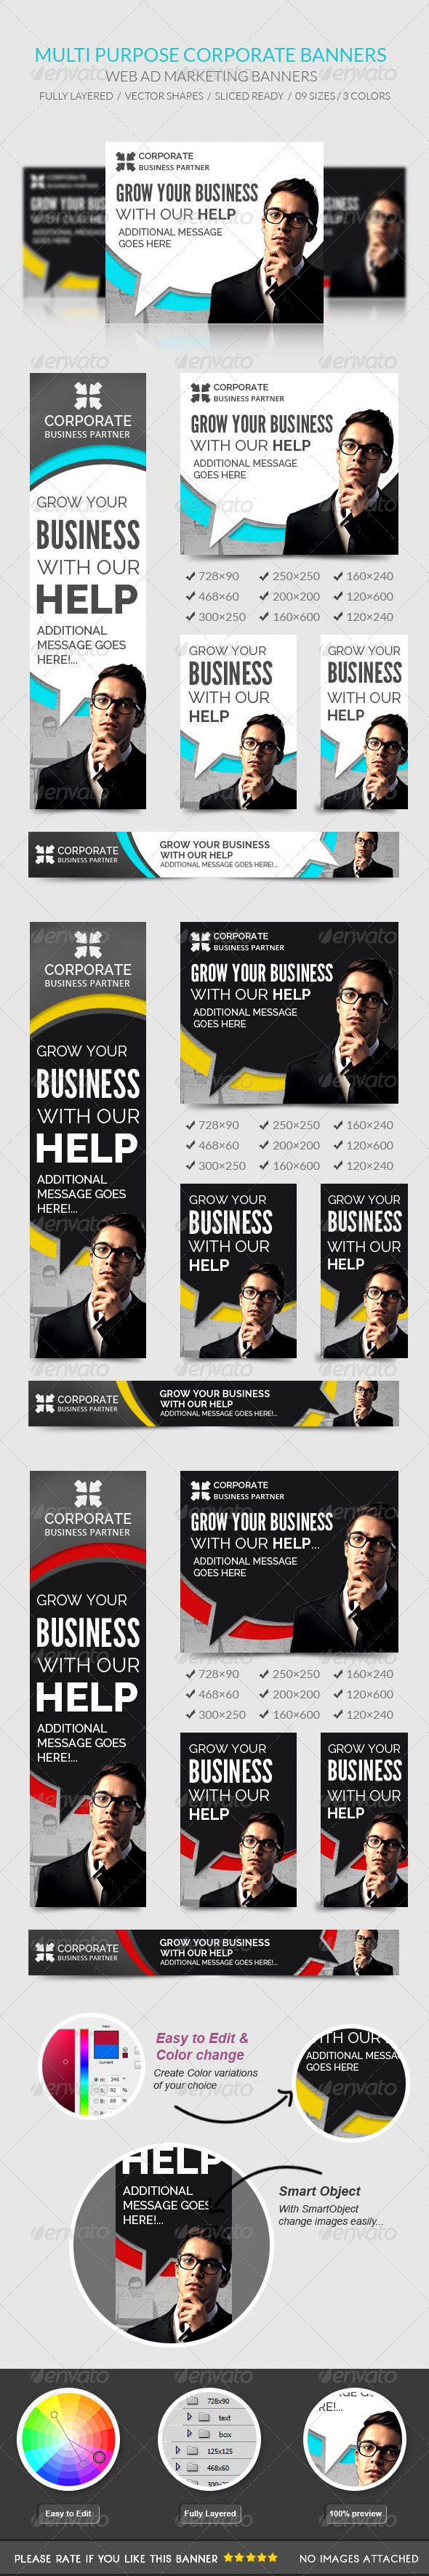 Corporate Web Banners Template PSD | Buy and Download: http://graphicriver.net/item/corporate-banners/7981256?WT.ac=category_thumb&WT.z_author=msrashdi&ref=ksioks